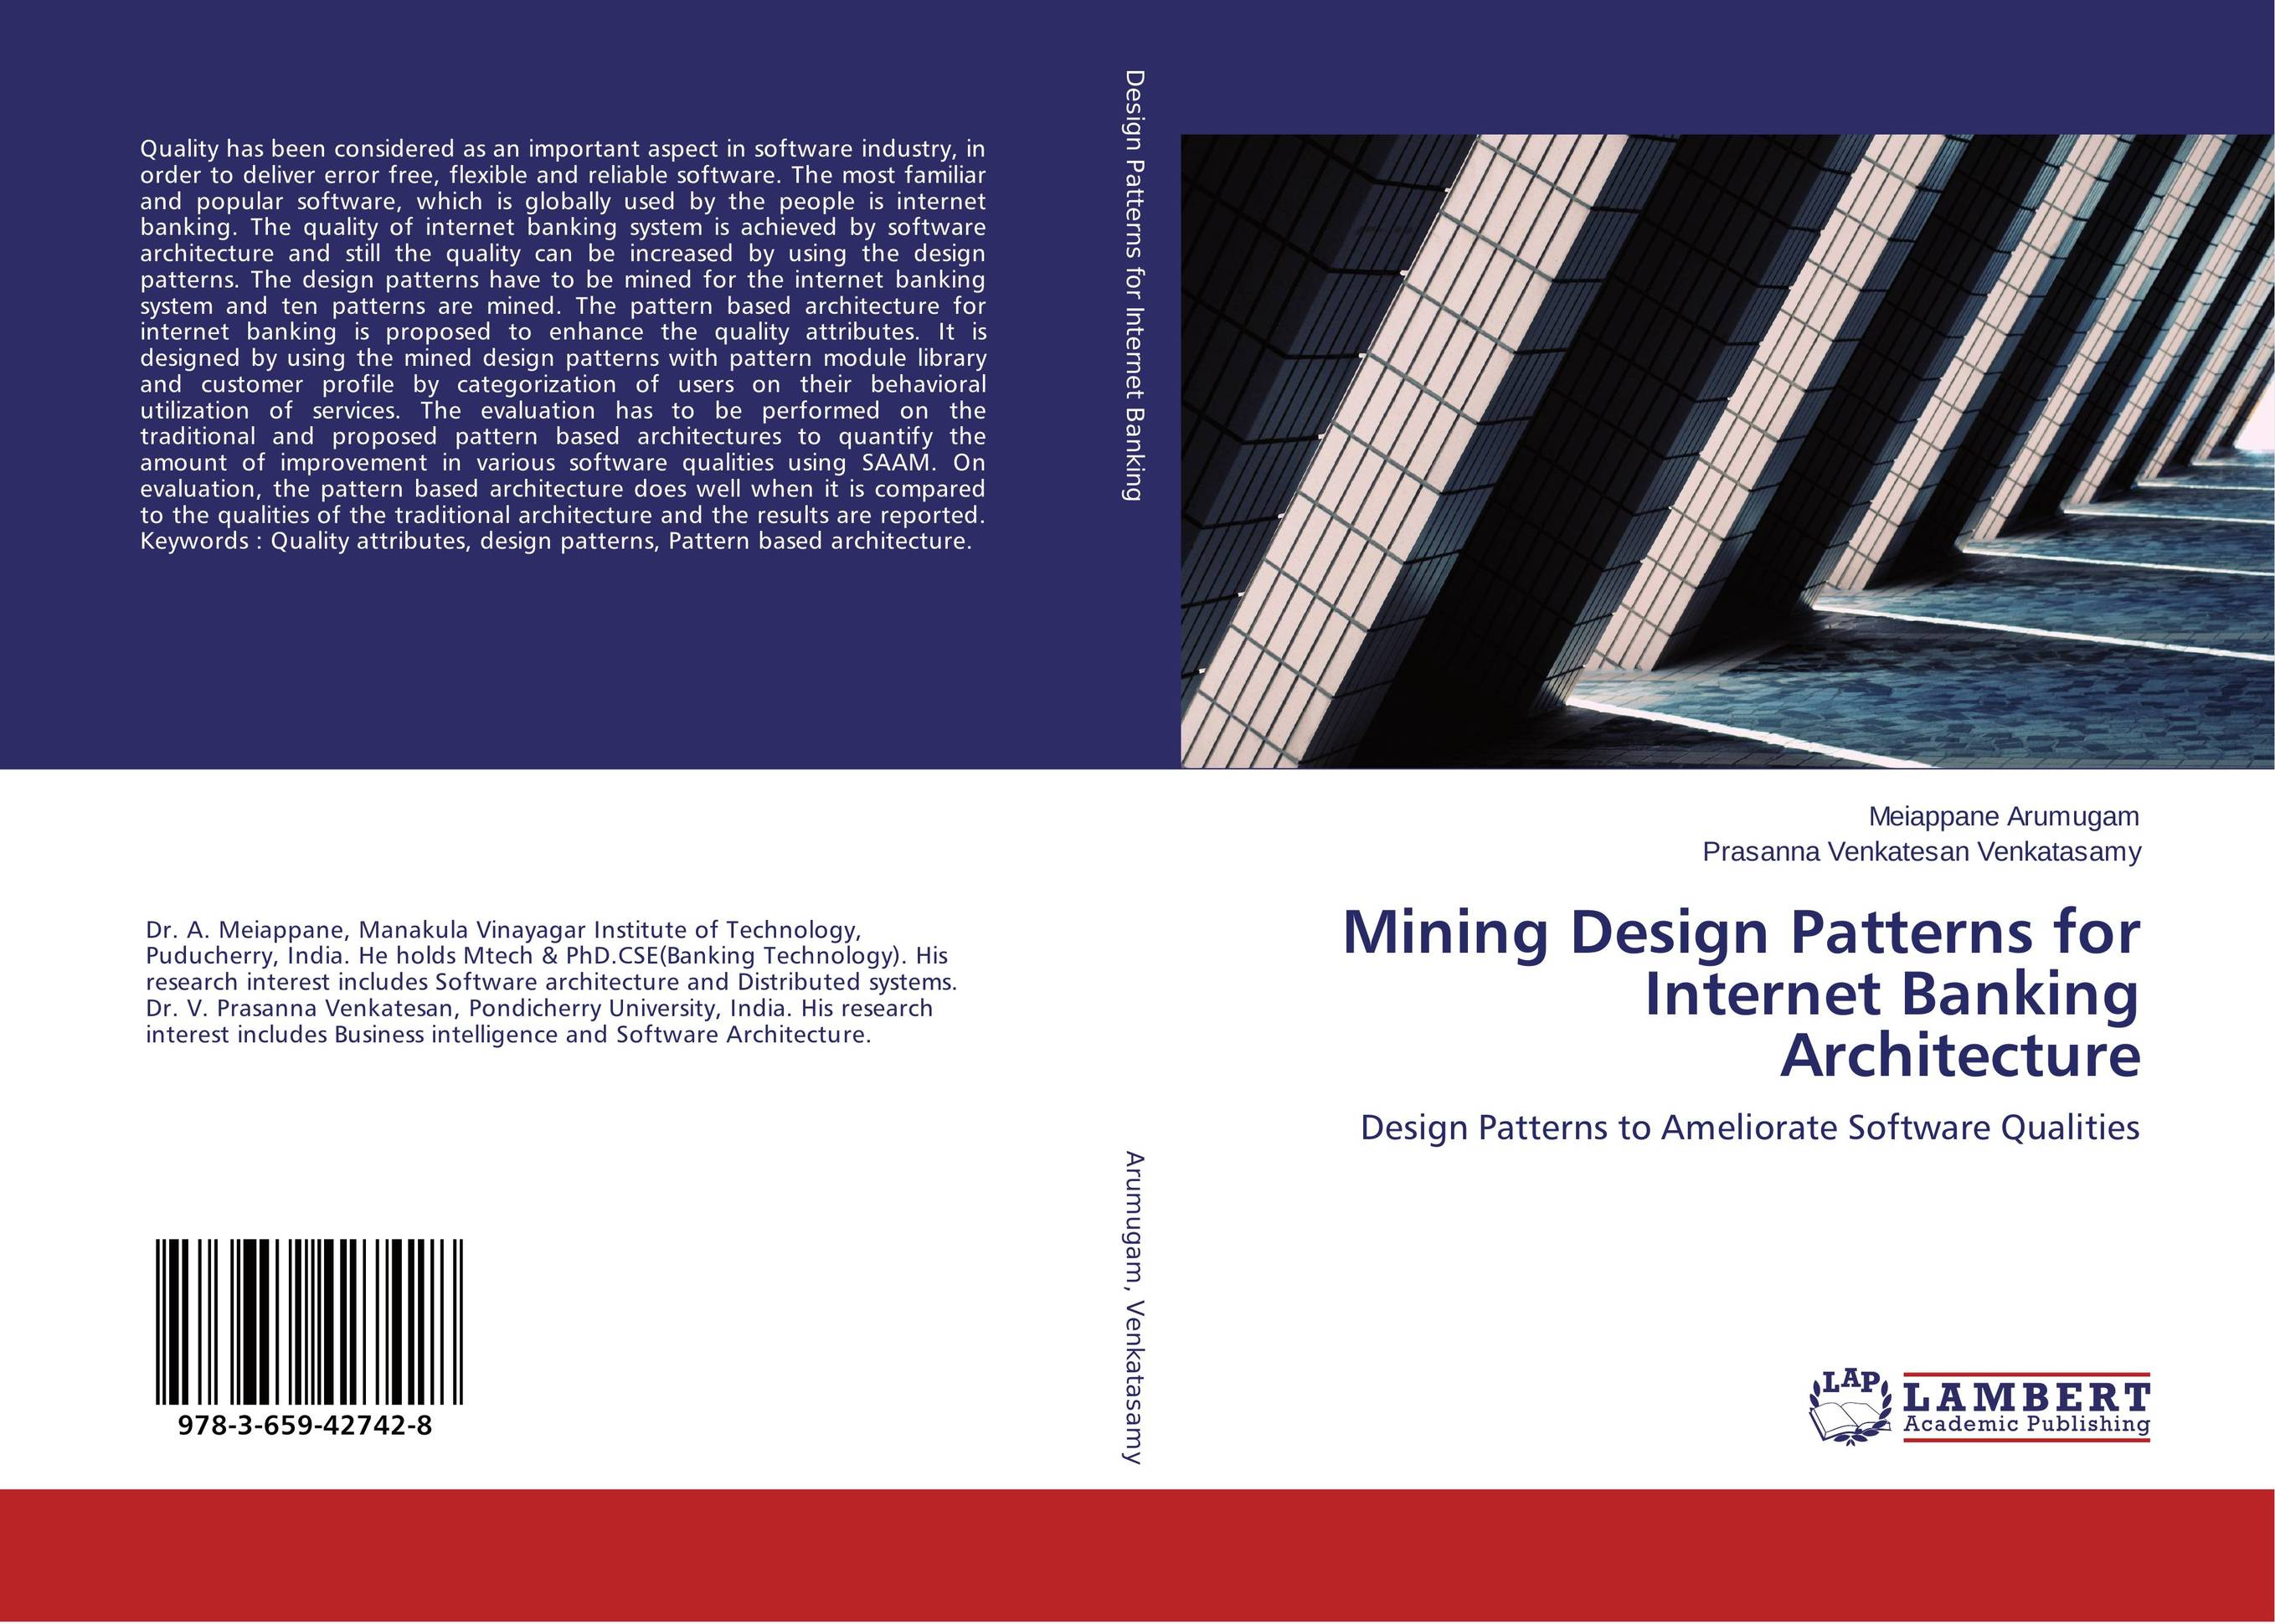 Mining Design Patterns for Internet Banking Architecture software architecture and system requirements